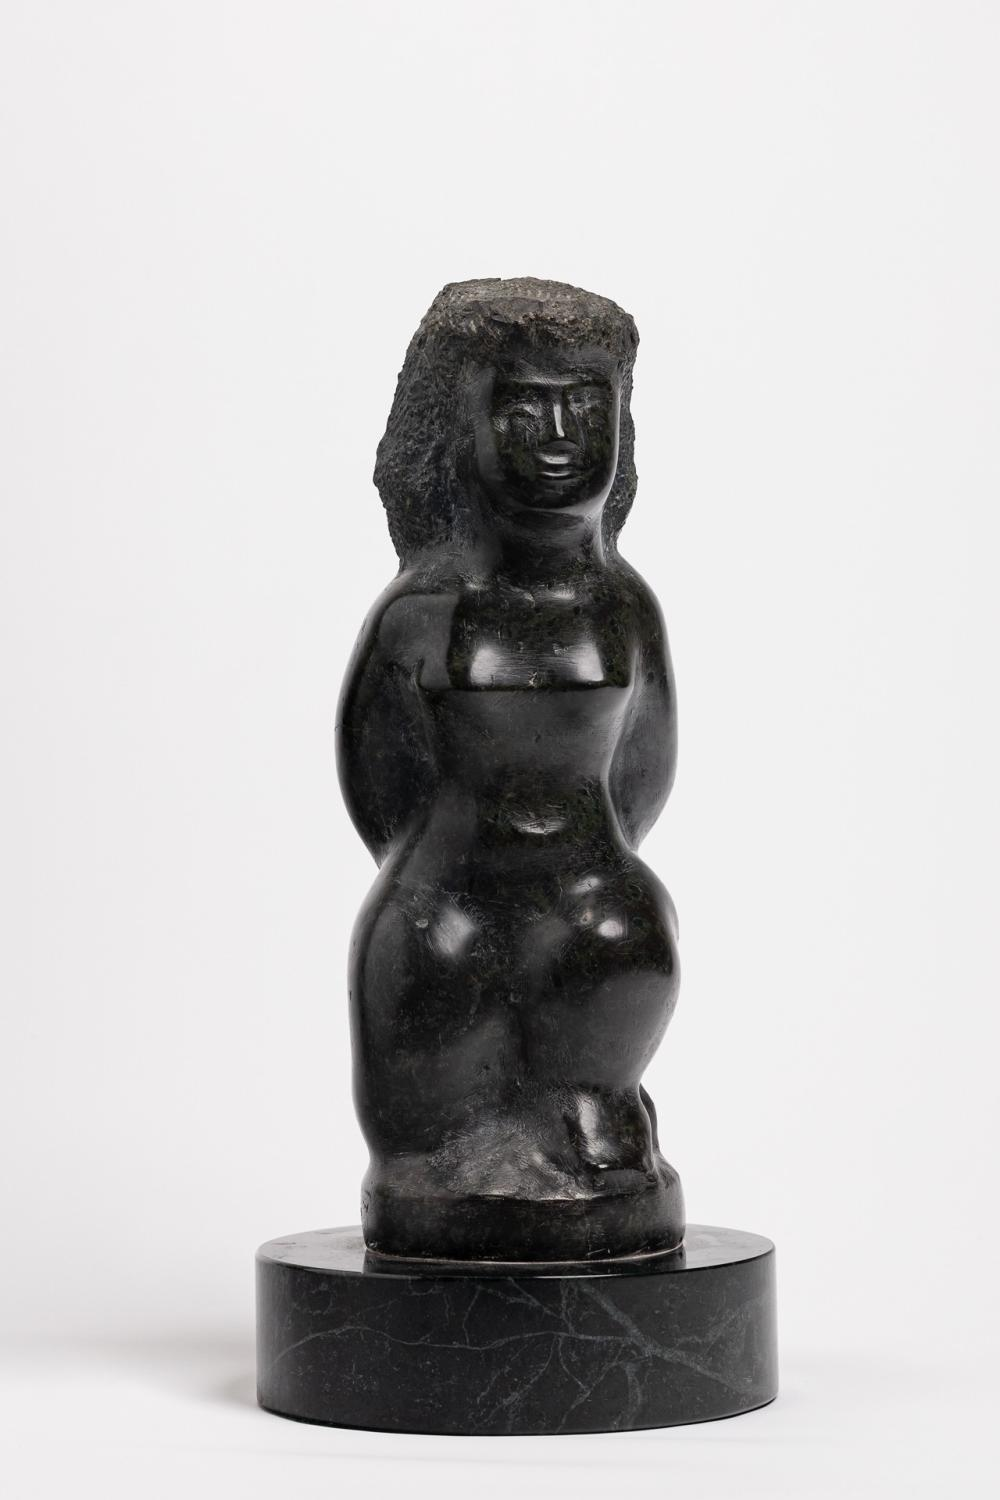 CHAIM GROSS, American (1904-1991), Female Nude, marble, height: 13 inches